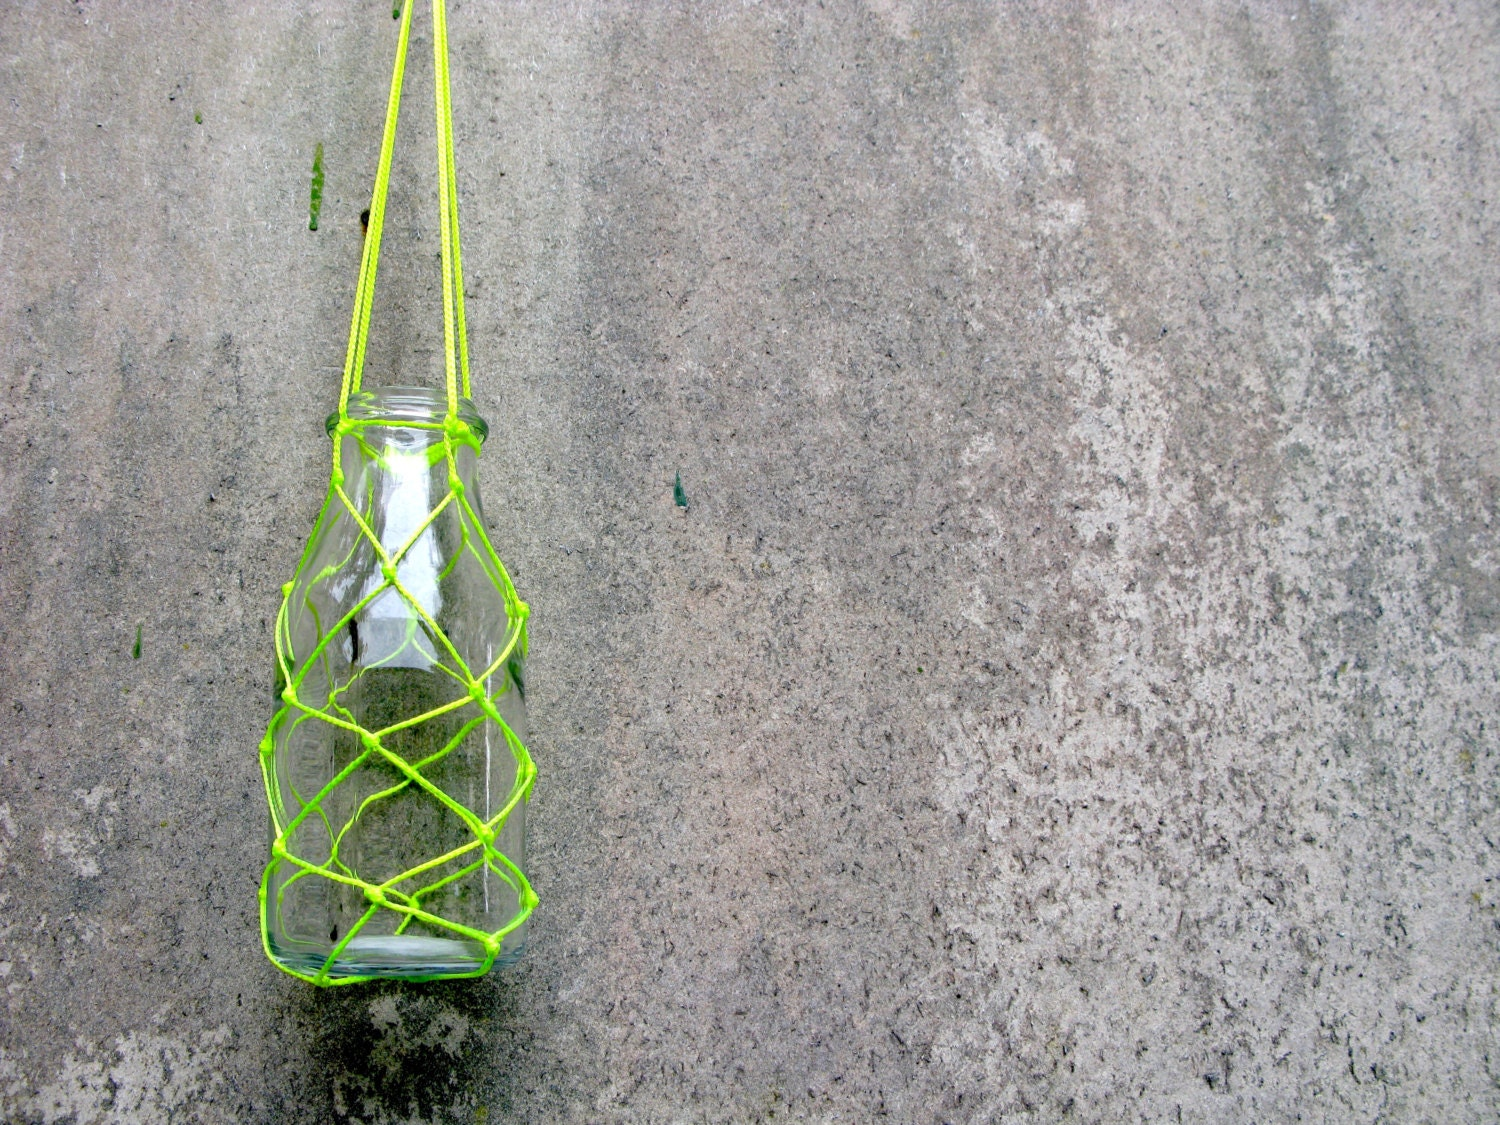 Sale small fishing net and macrame plant hanger with by chompa for Small fishing net